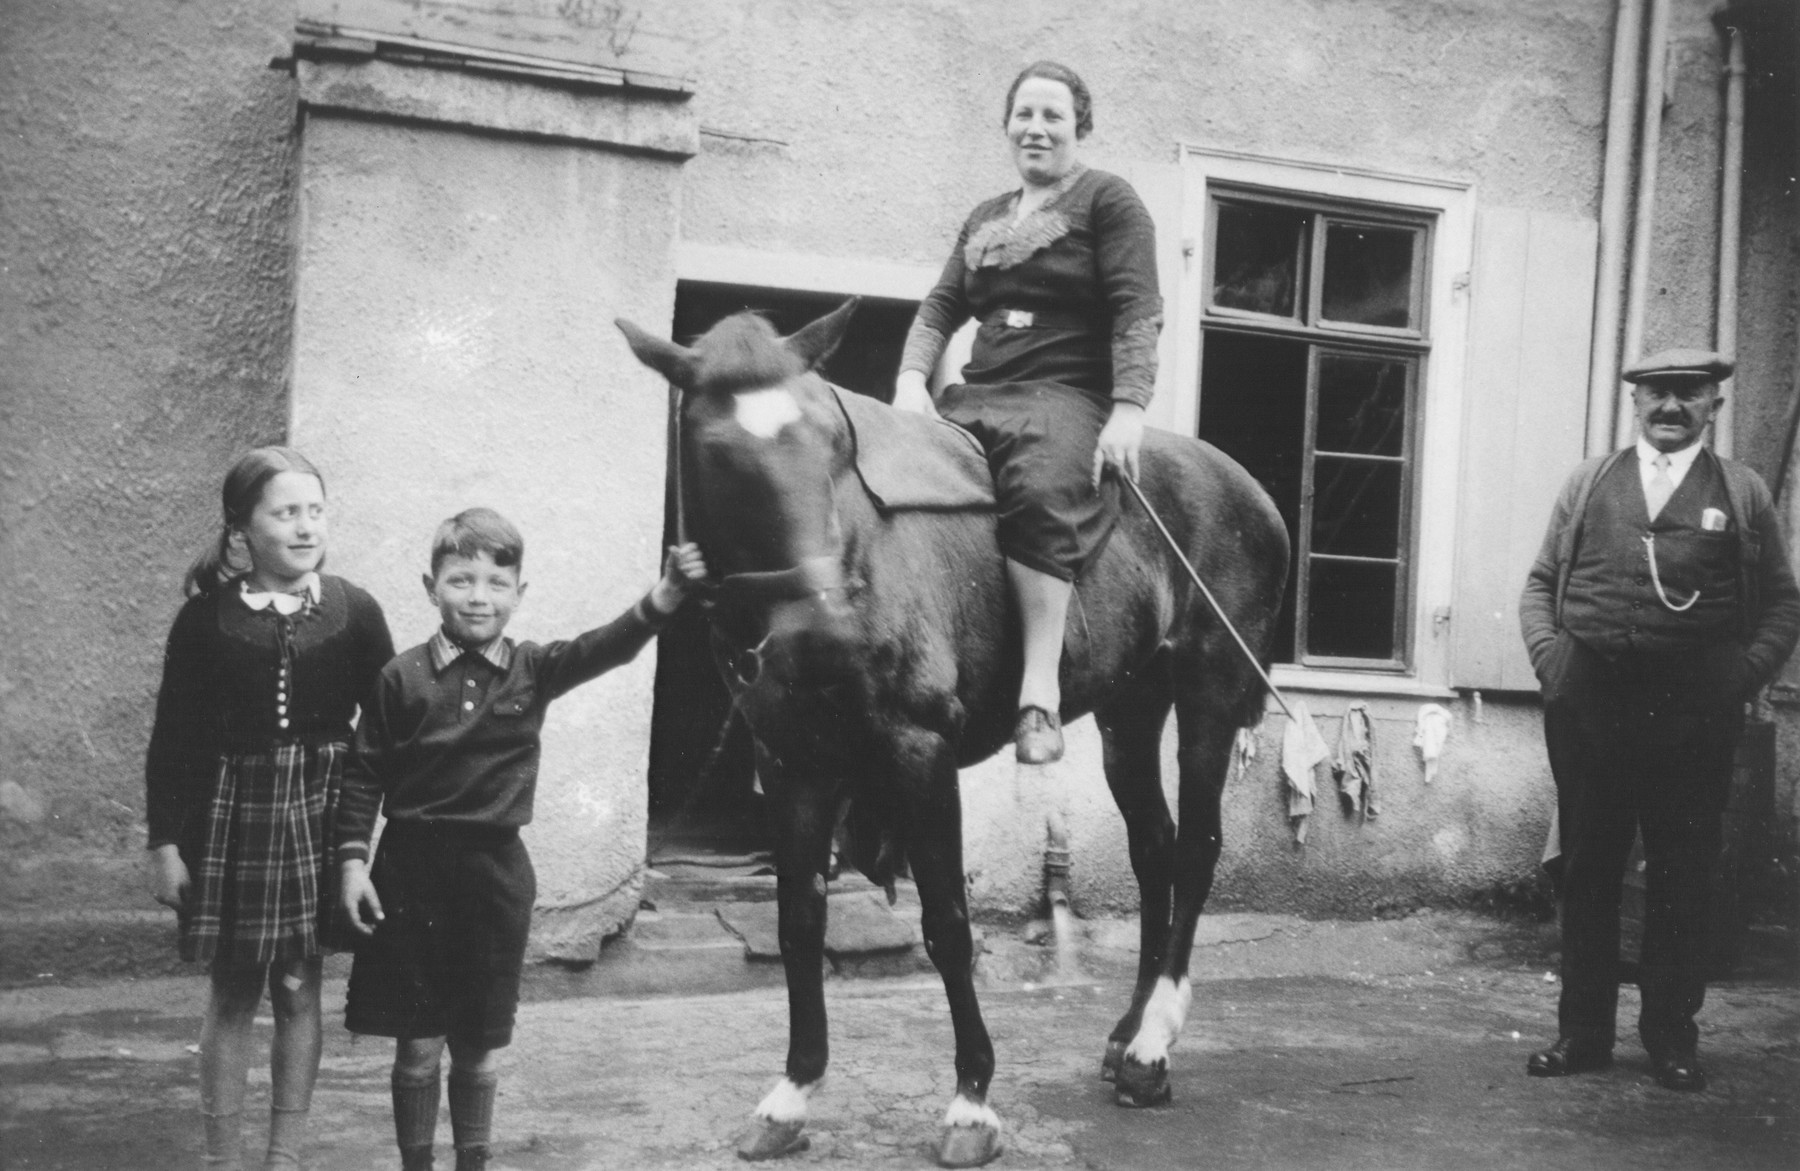 Erna Gottschalk poses on a horse.  Among those pictured are Gustav Gerson (right of Erna) and Alfred Gottschalk (left of Erna).